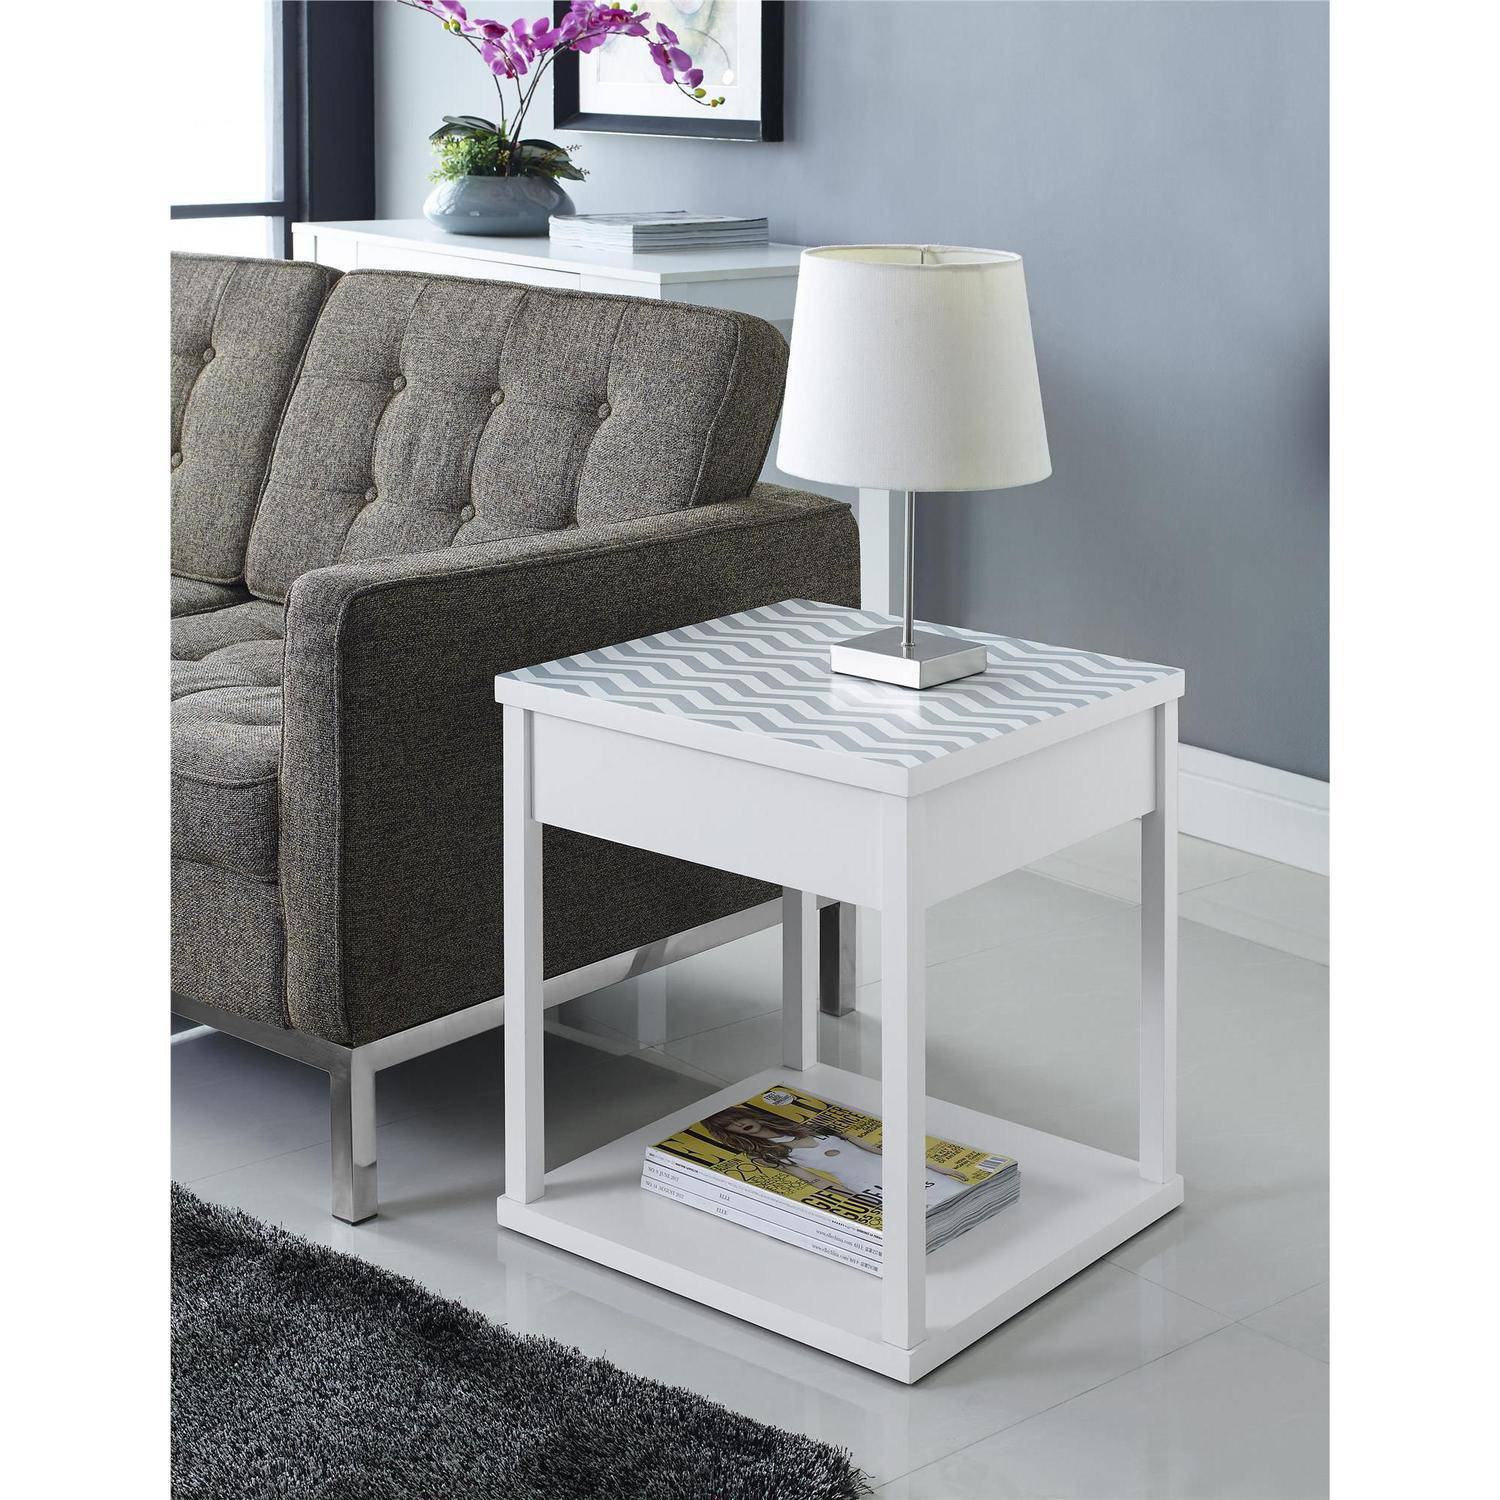 Altra Furniture Parsons Nightstand/End Table, White with Chevron Top